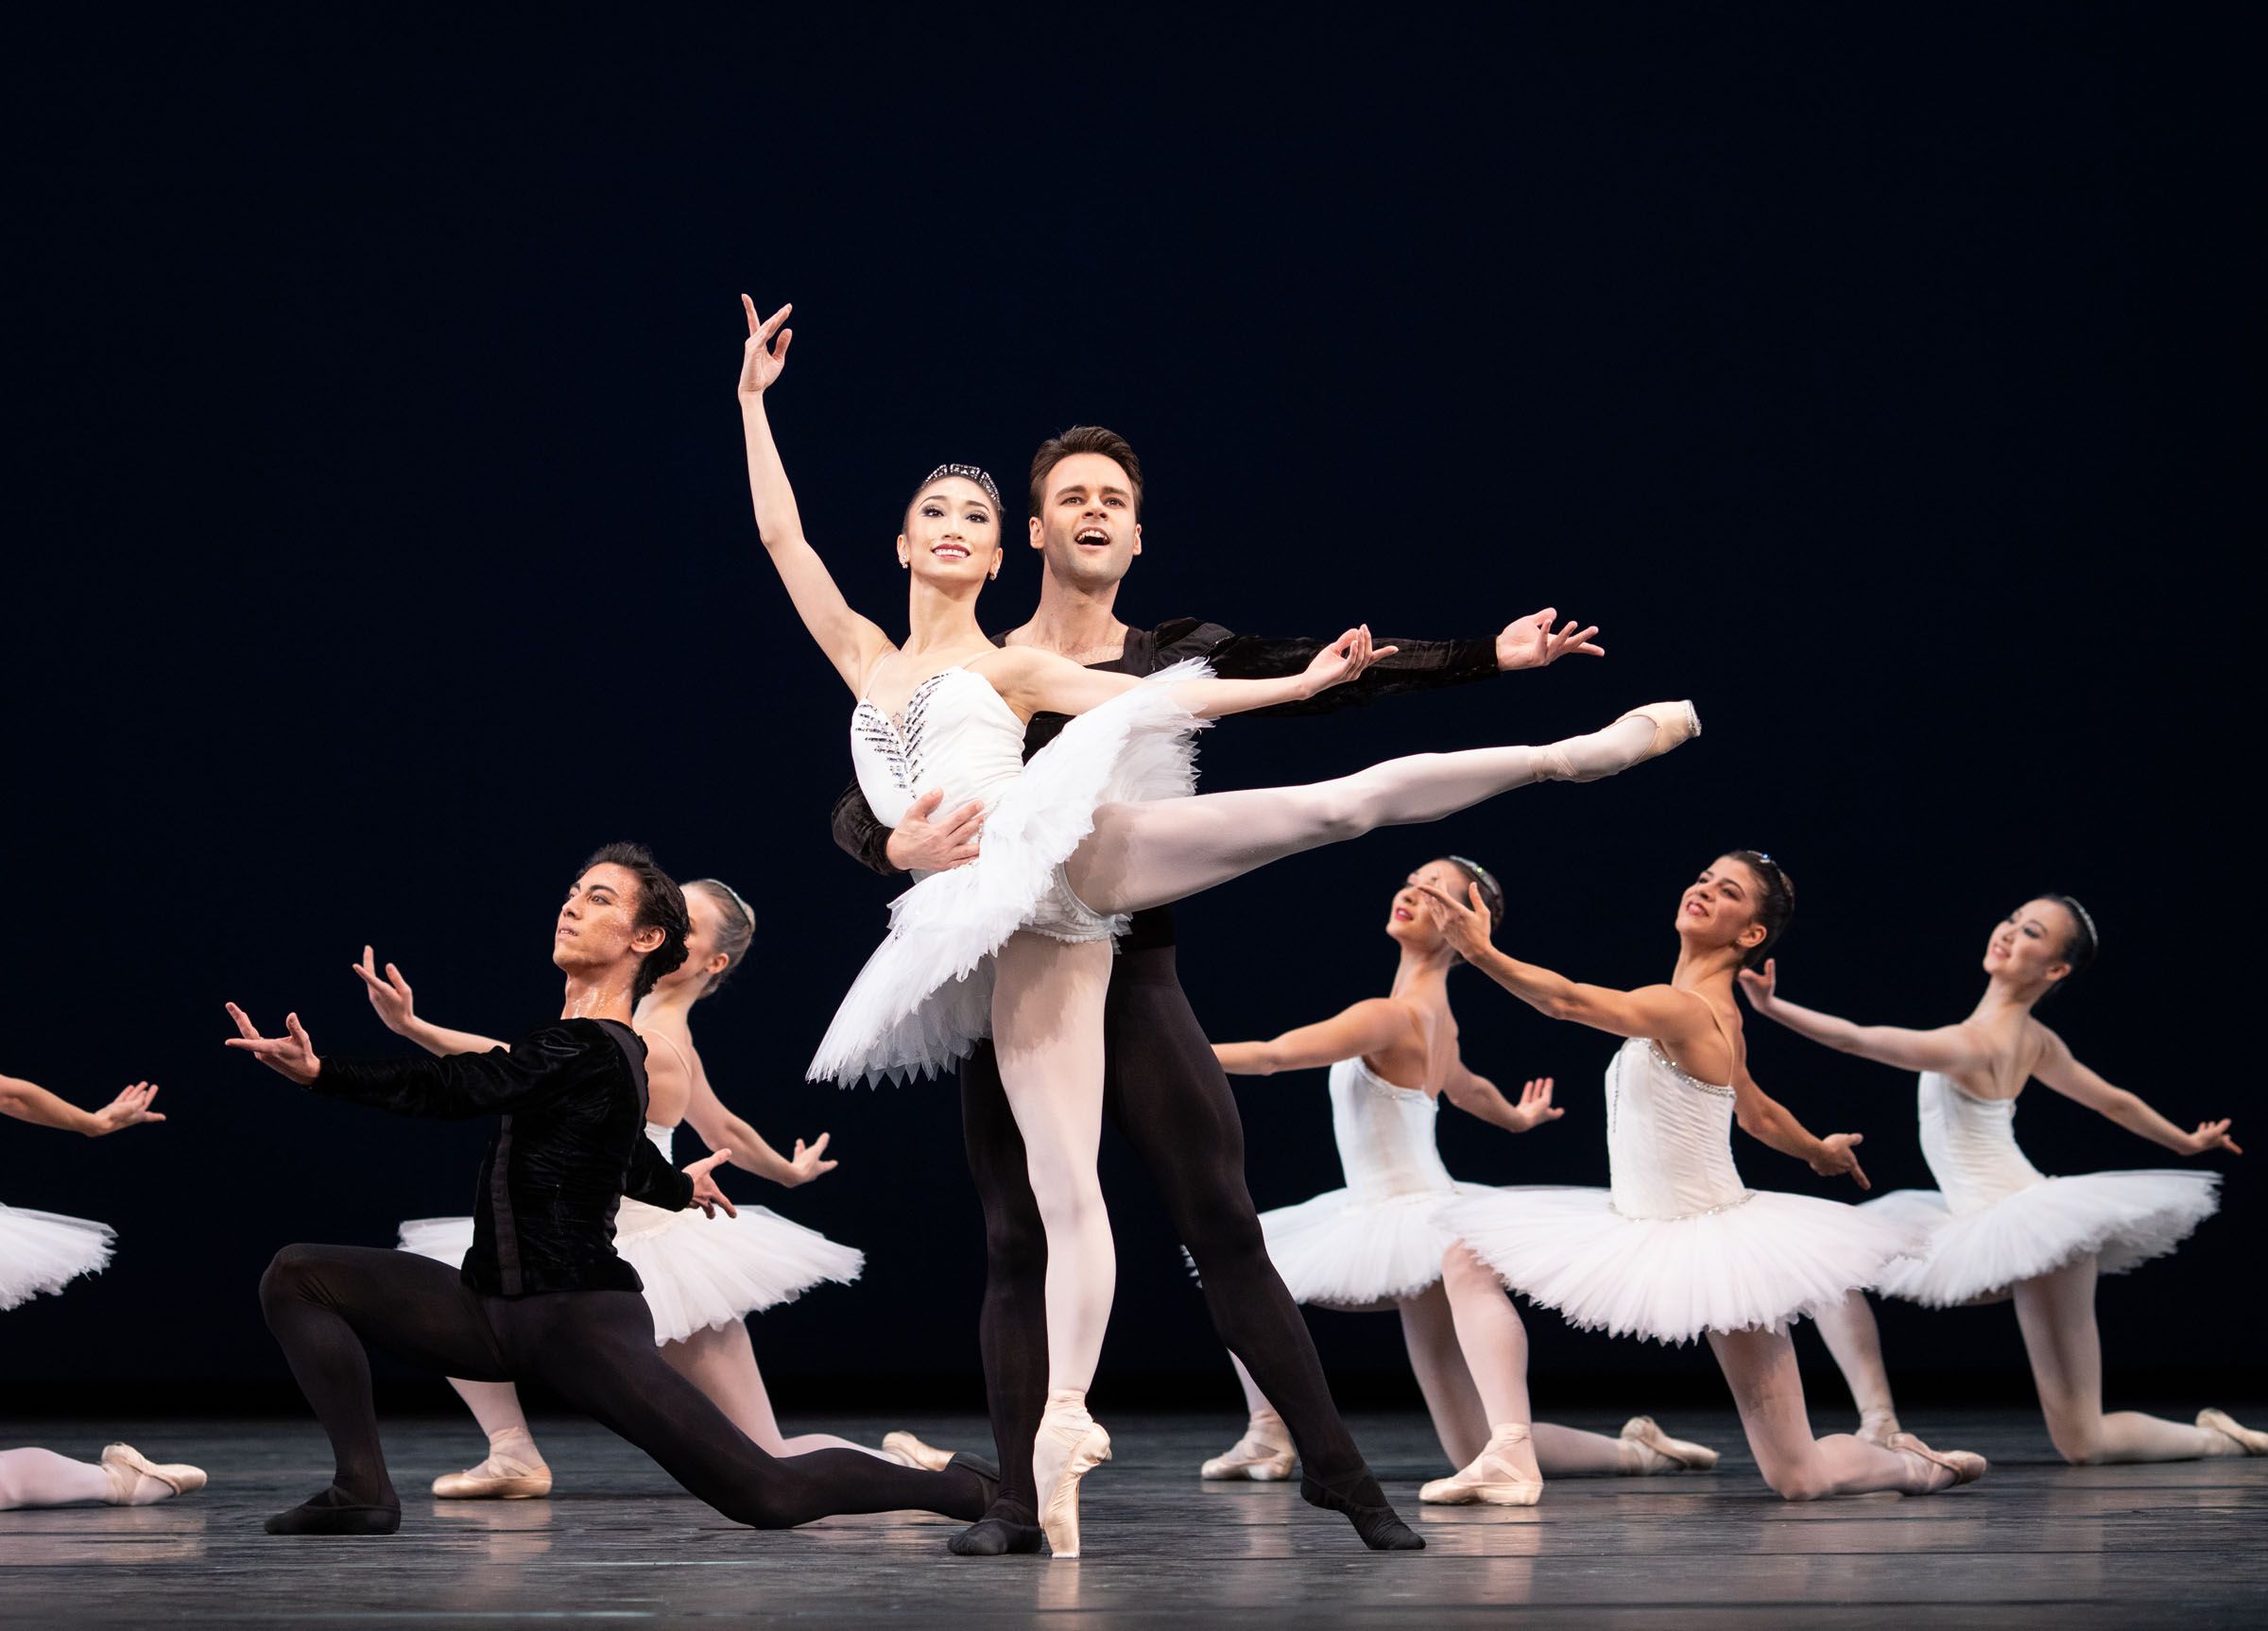 Akane Takada, Alexander Campbell and artists of The Royal Ballet in George Balanchine's Symphony in C